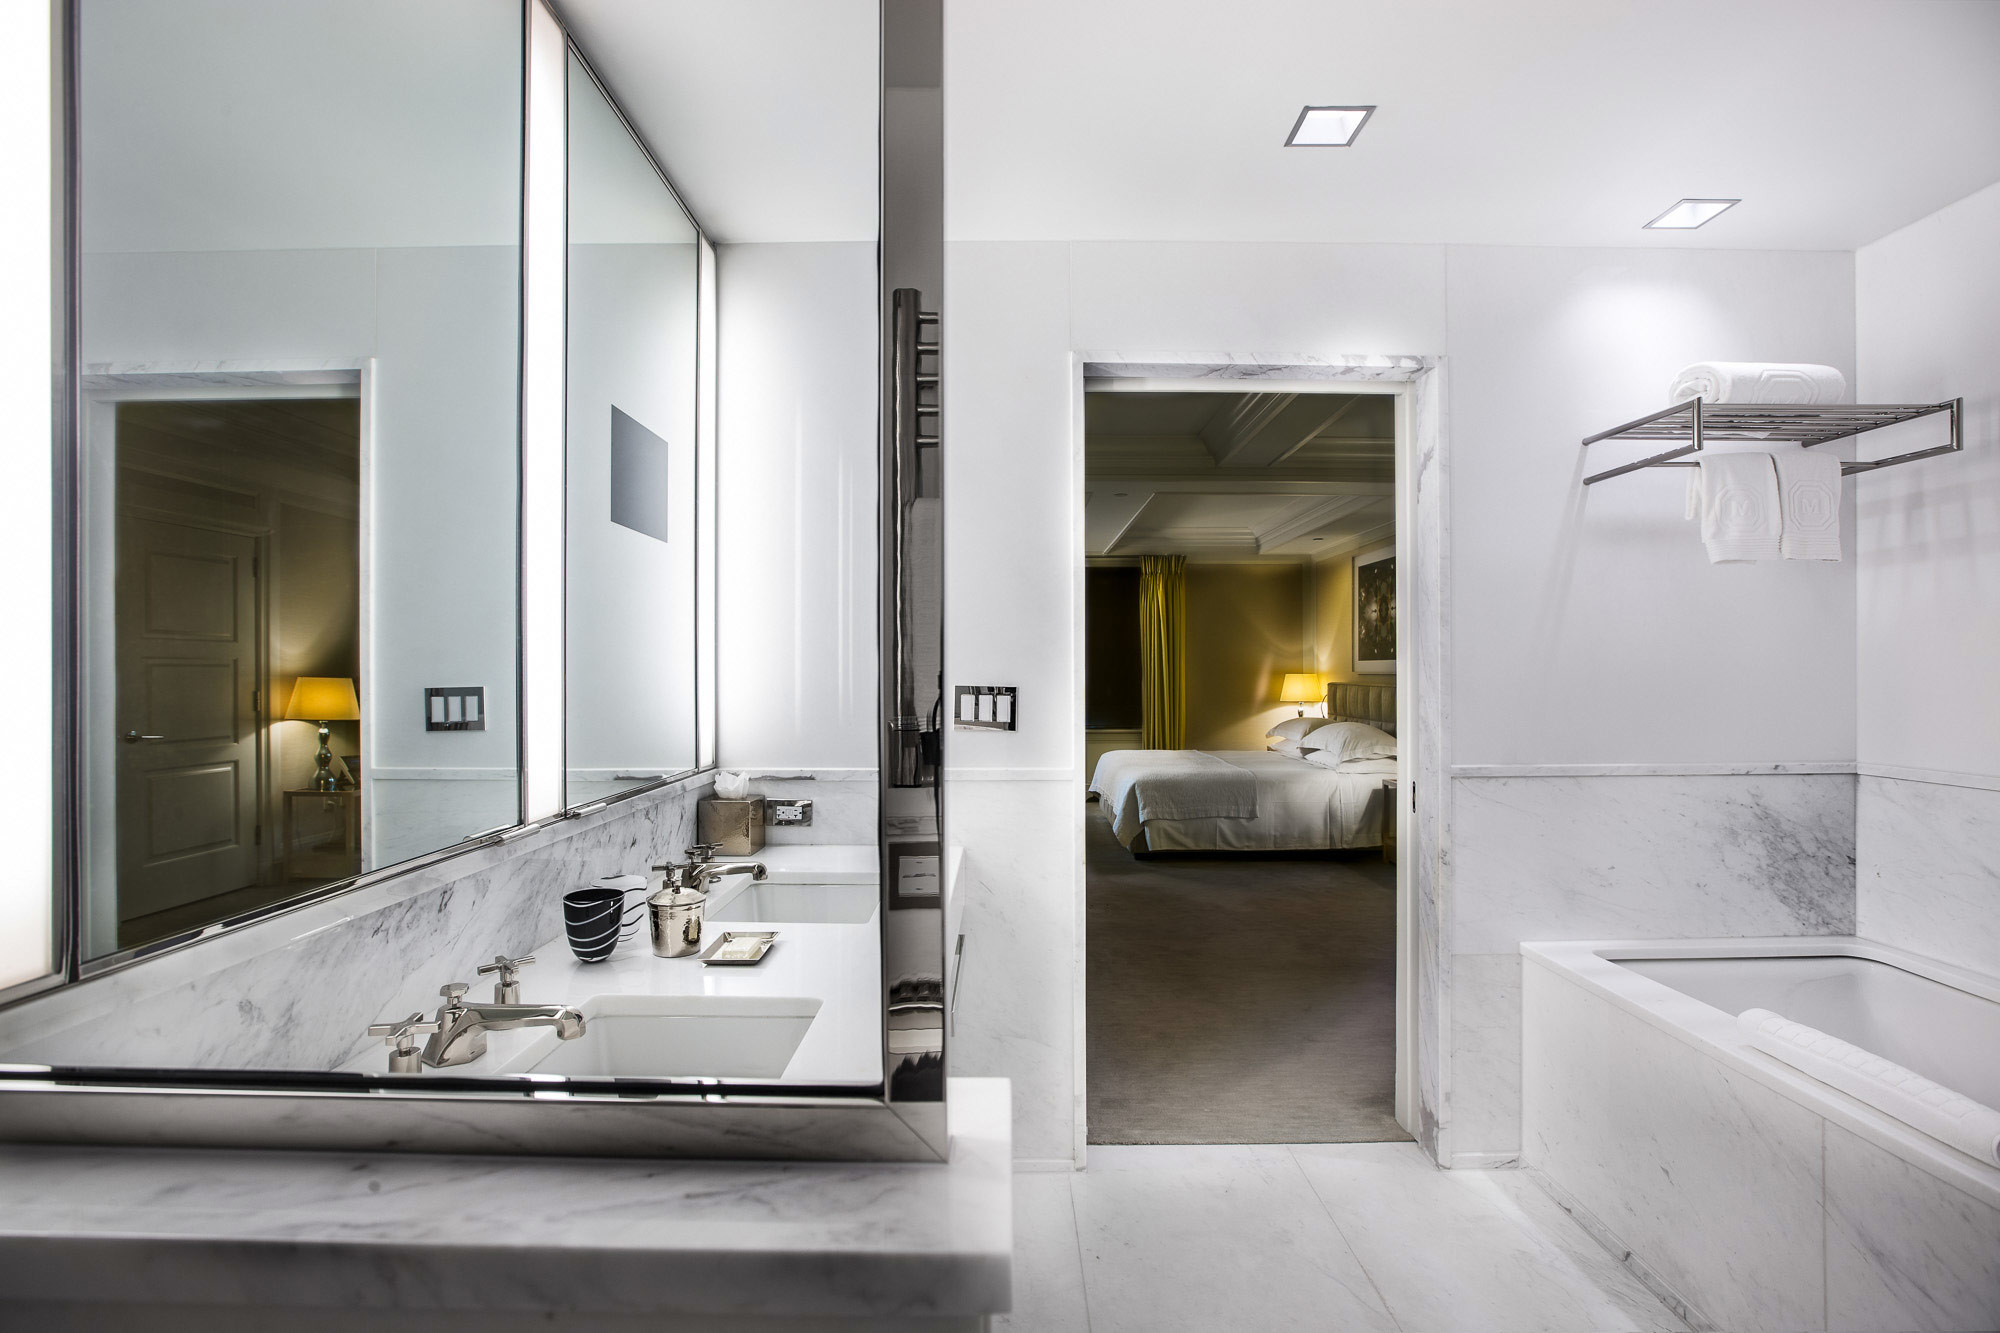 Luxury Bathrooms In Hotels the mark two bedroom luxury hotel suite | the mark hotel | new